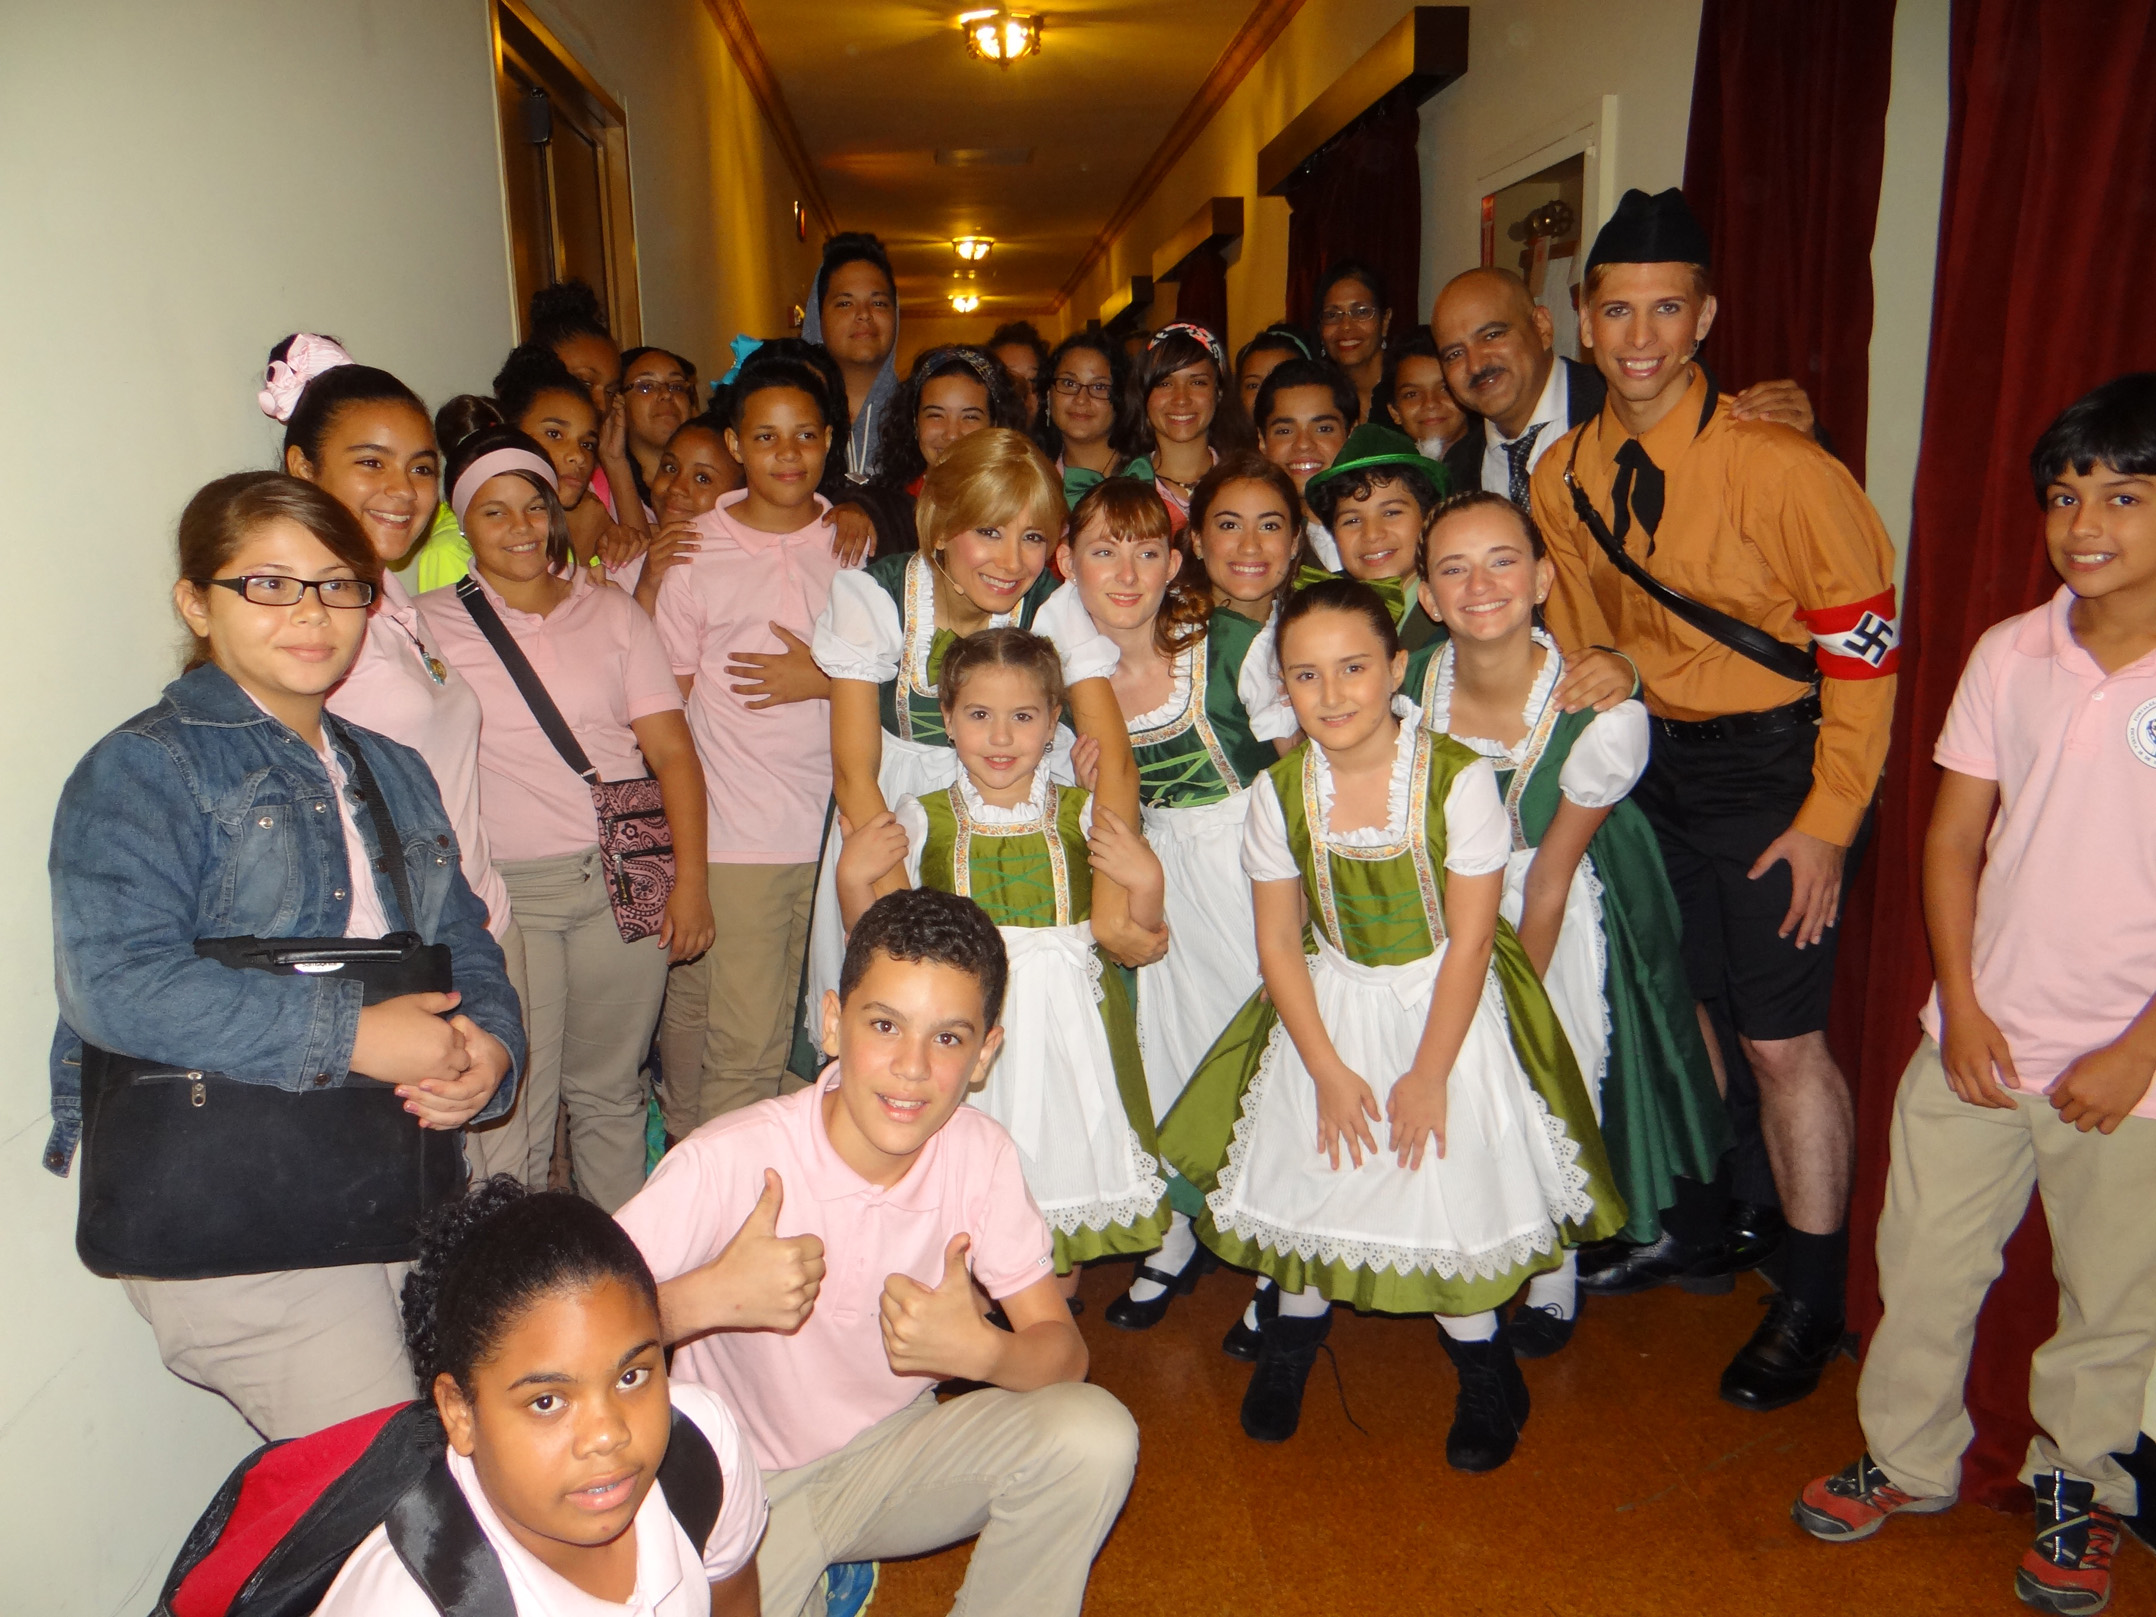 Foto 1- Estudiantes de Vieques junto a parte del elenco The Sound of Music